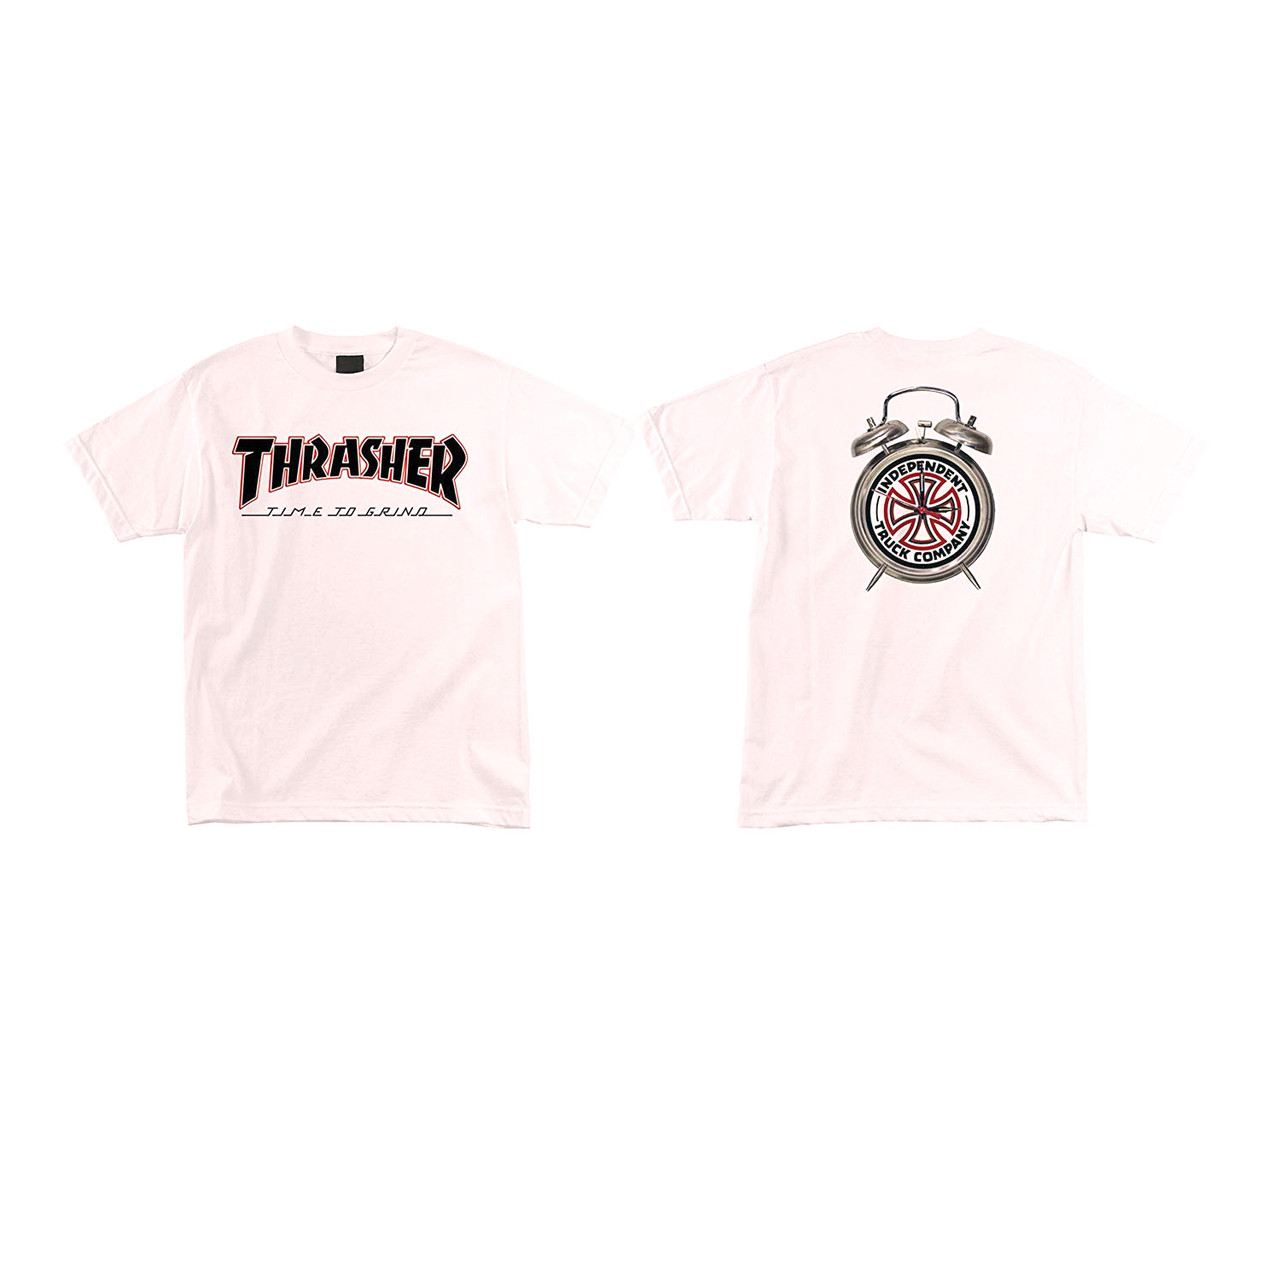 514723d86f76 ... Independent Shirt Thrasher TTG White. Image 1. Click to enlarge